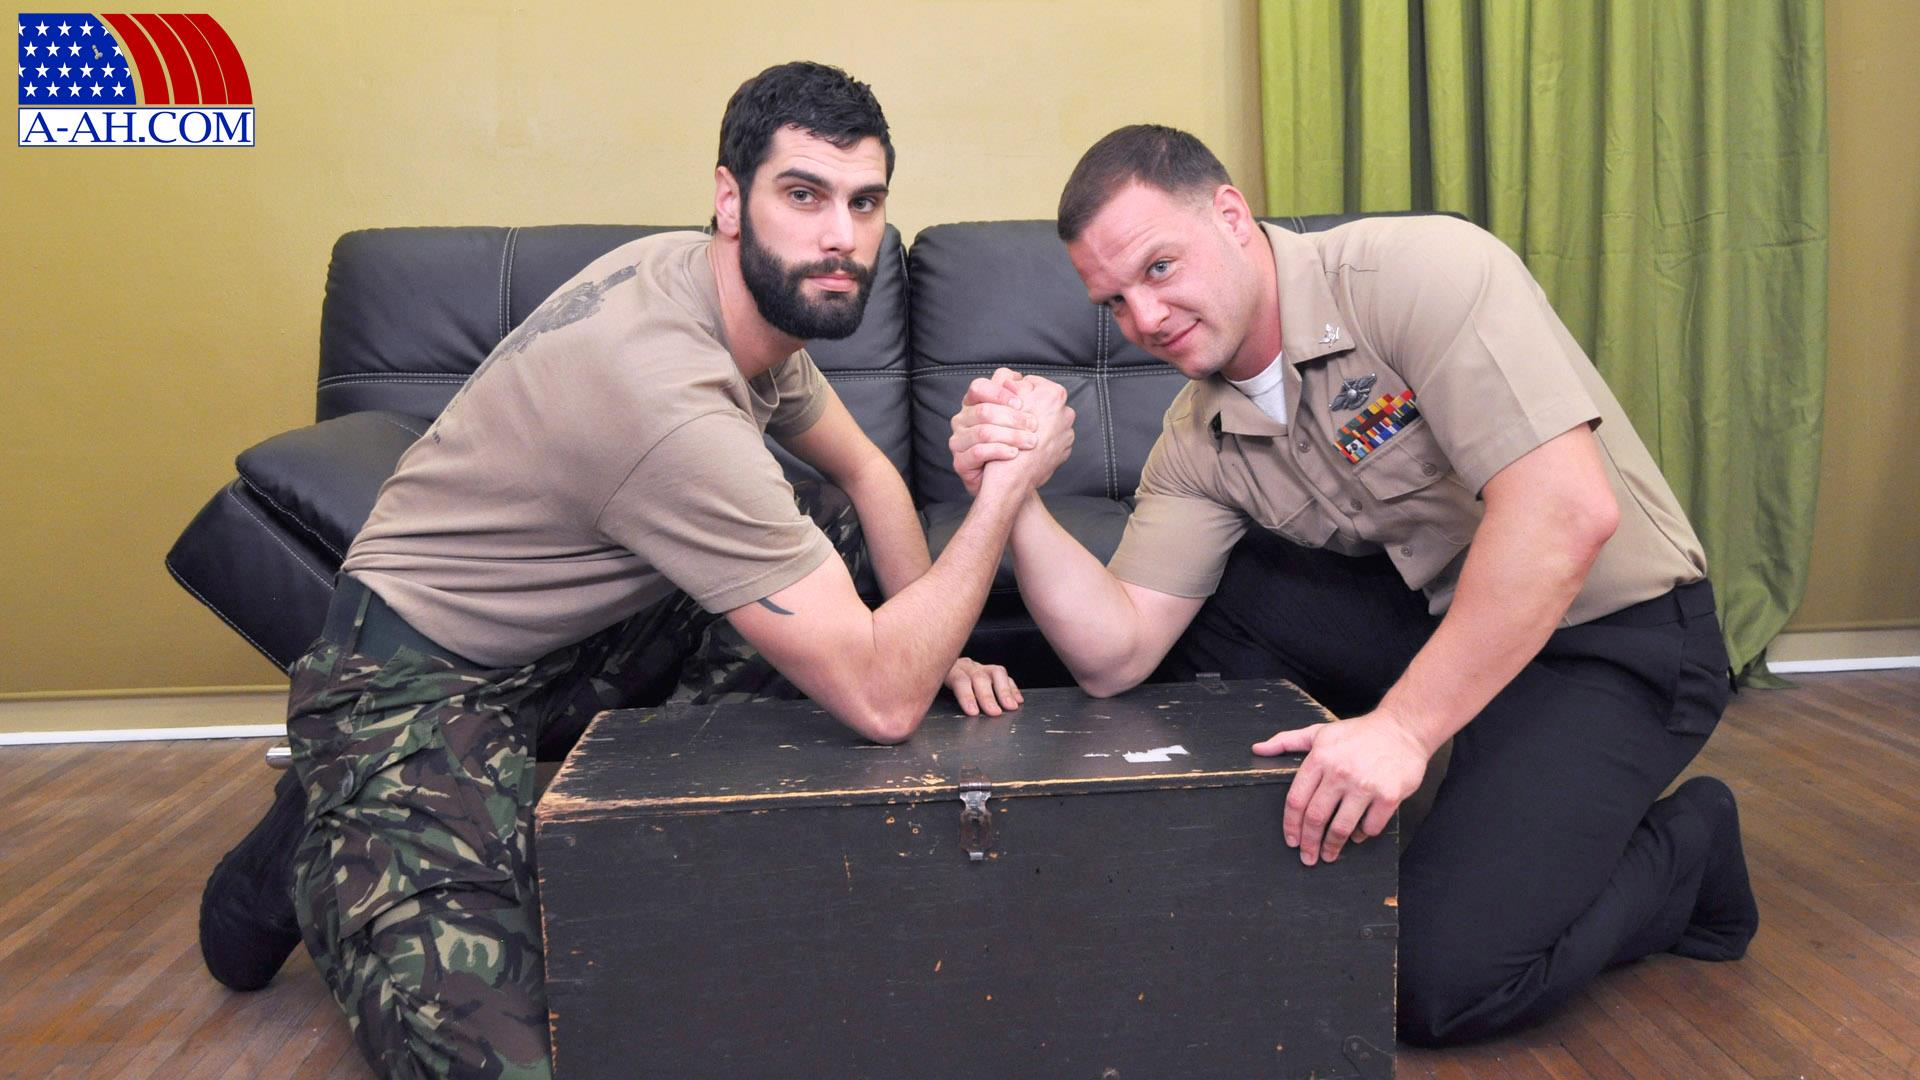 All-American-Heroes-PRIVATE-ANTONIO-AND-NAVY-CORPSMAN-LOGAN-Military-Guys-Sucking-Cock-Amateur-Gay-Porn-01 US Navy Corpsman Trades Blowjobs With A British Army Private